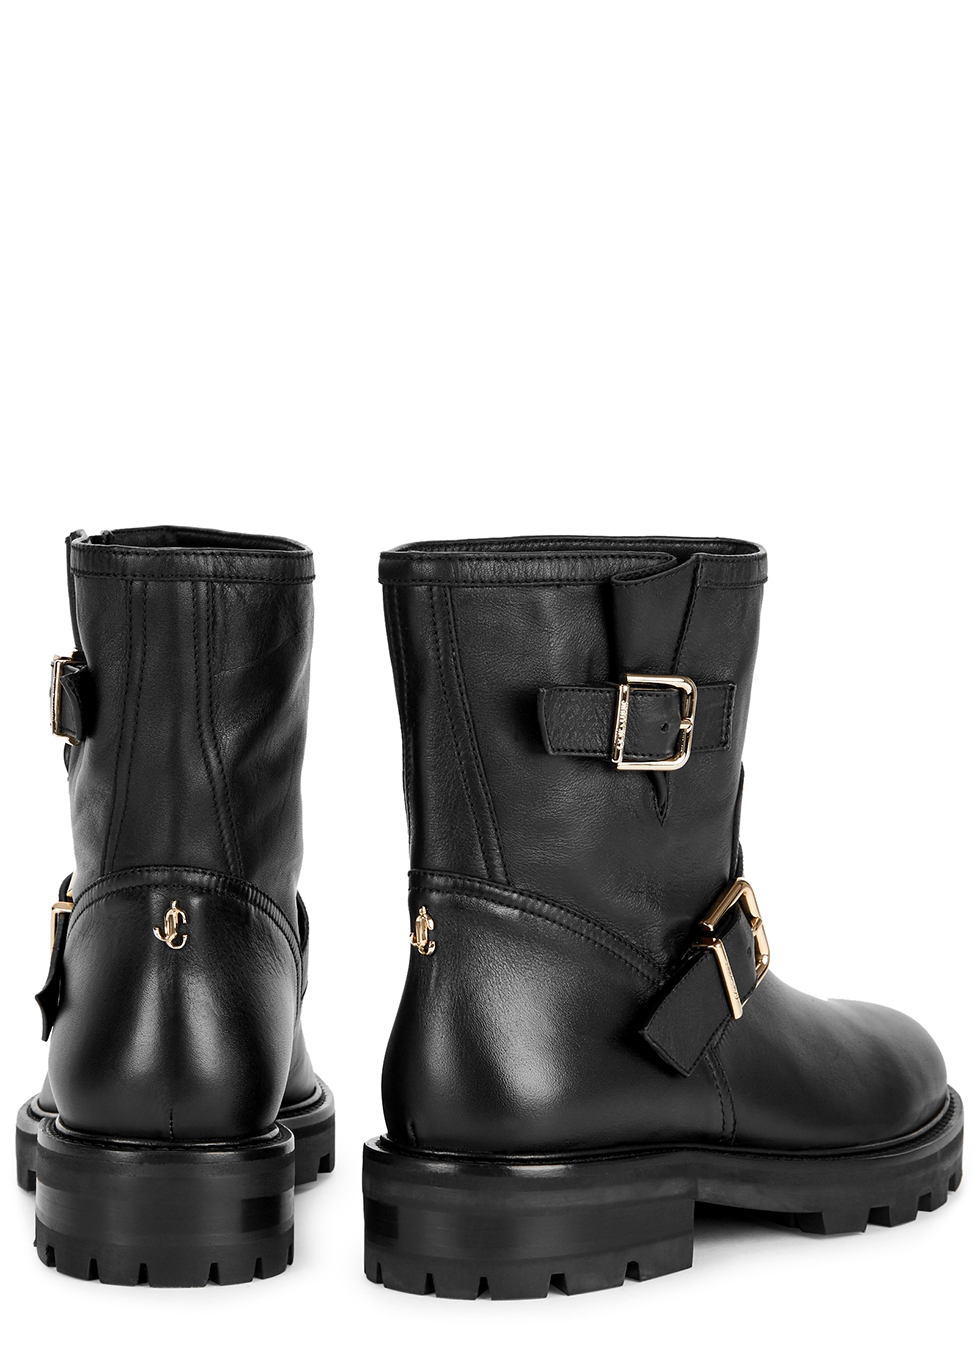 Jimmy Choo Youth black leather ankle